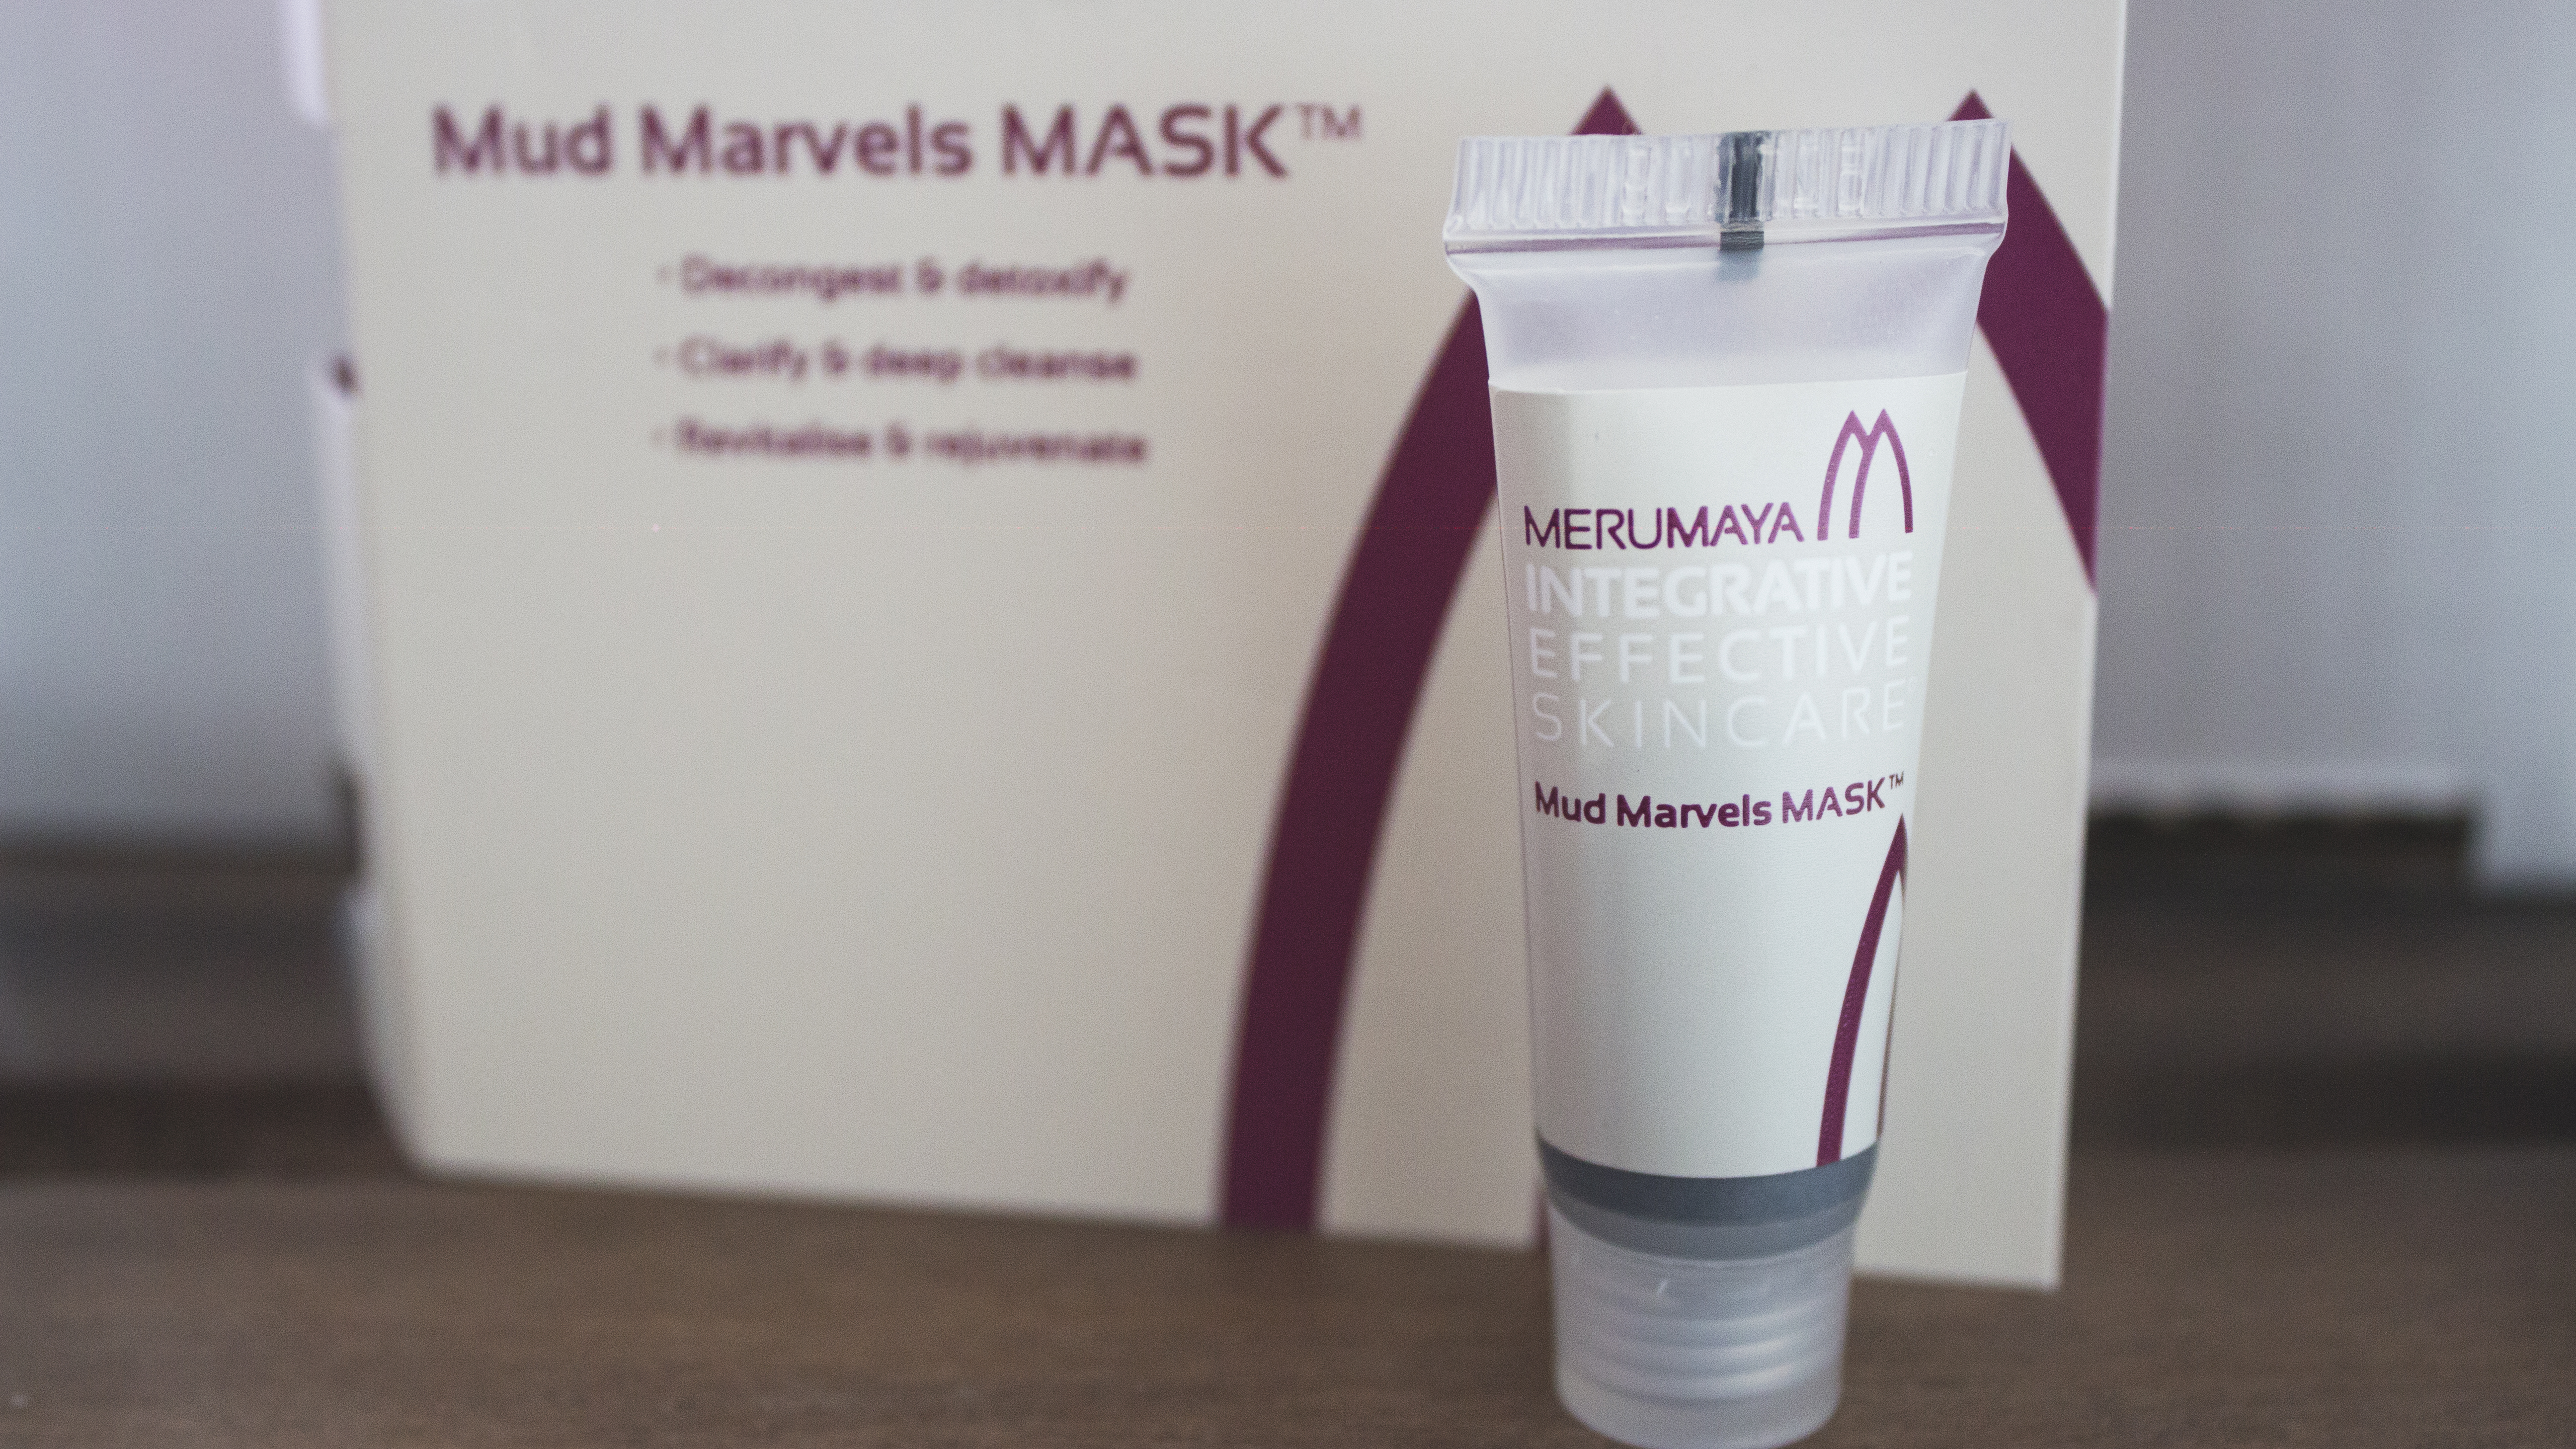 Merumaya Mud Marvels Mask Review